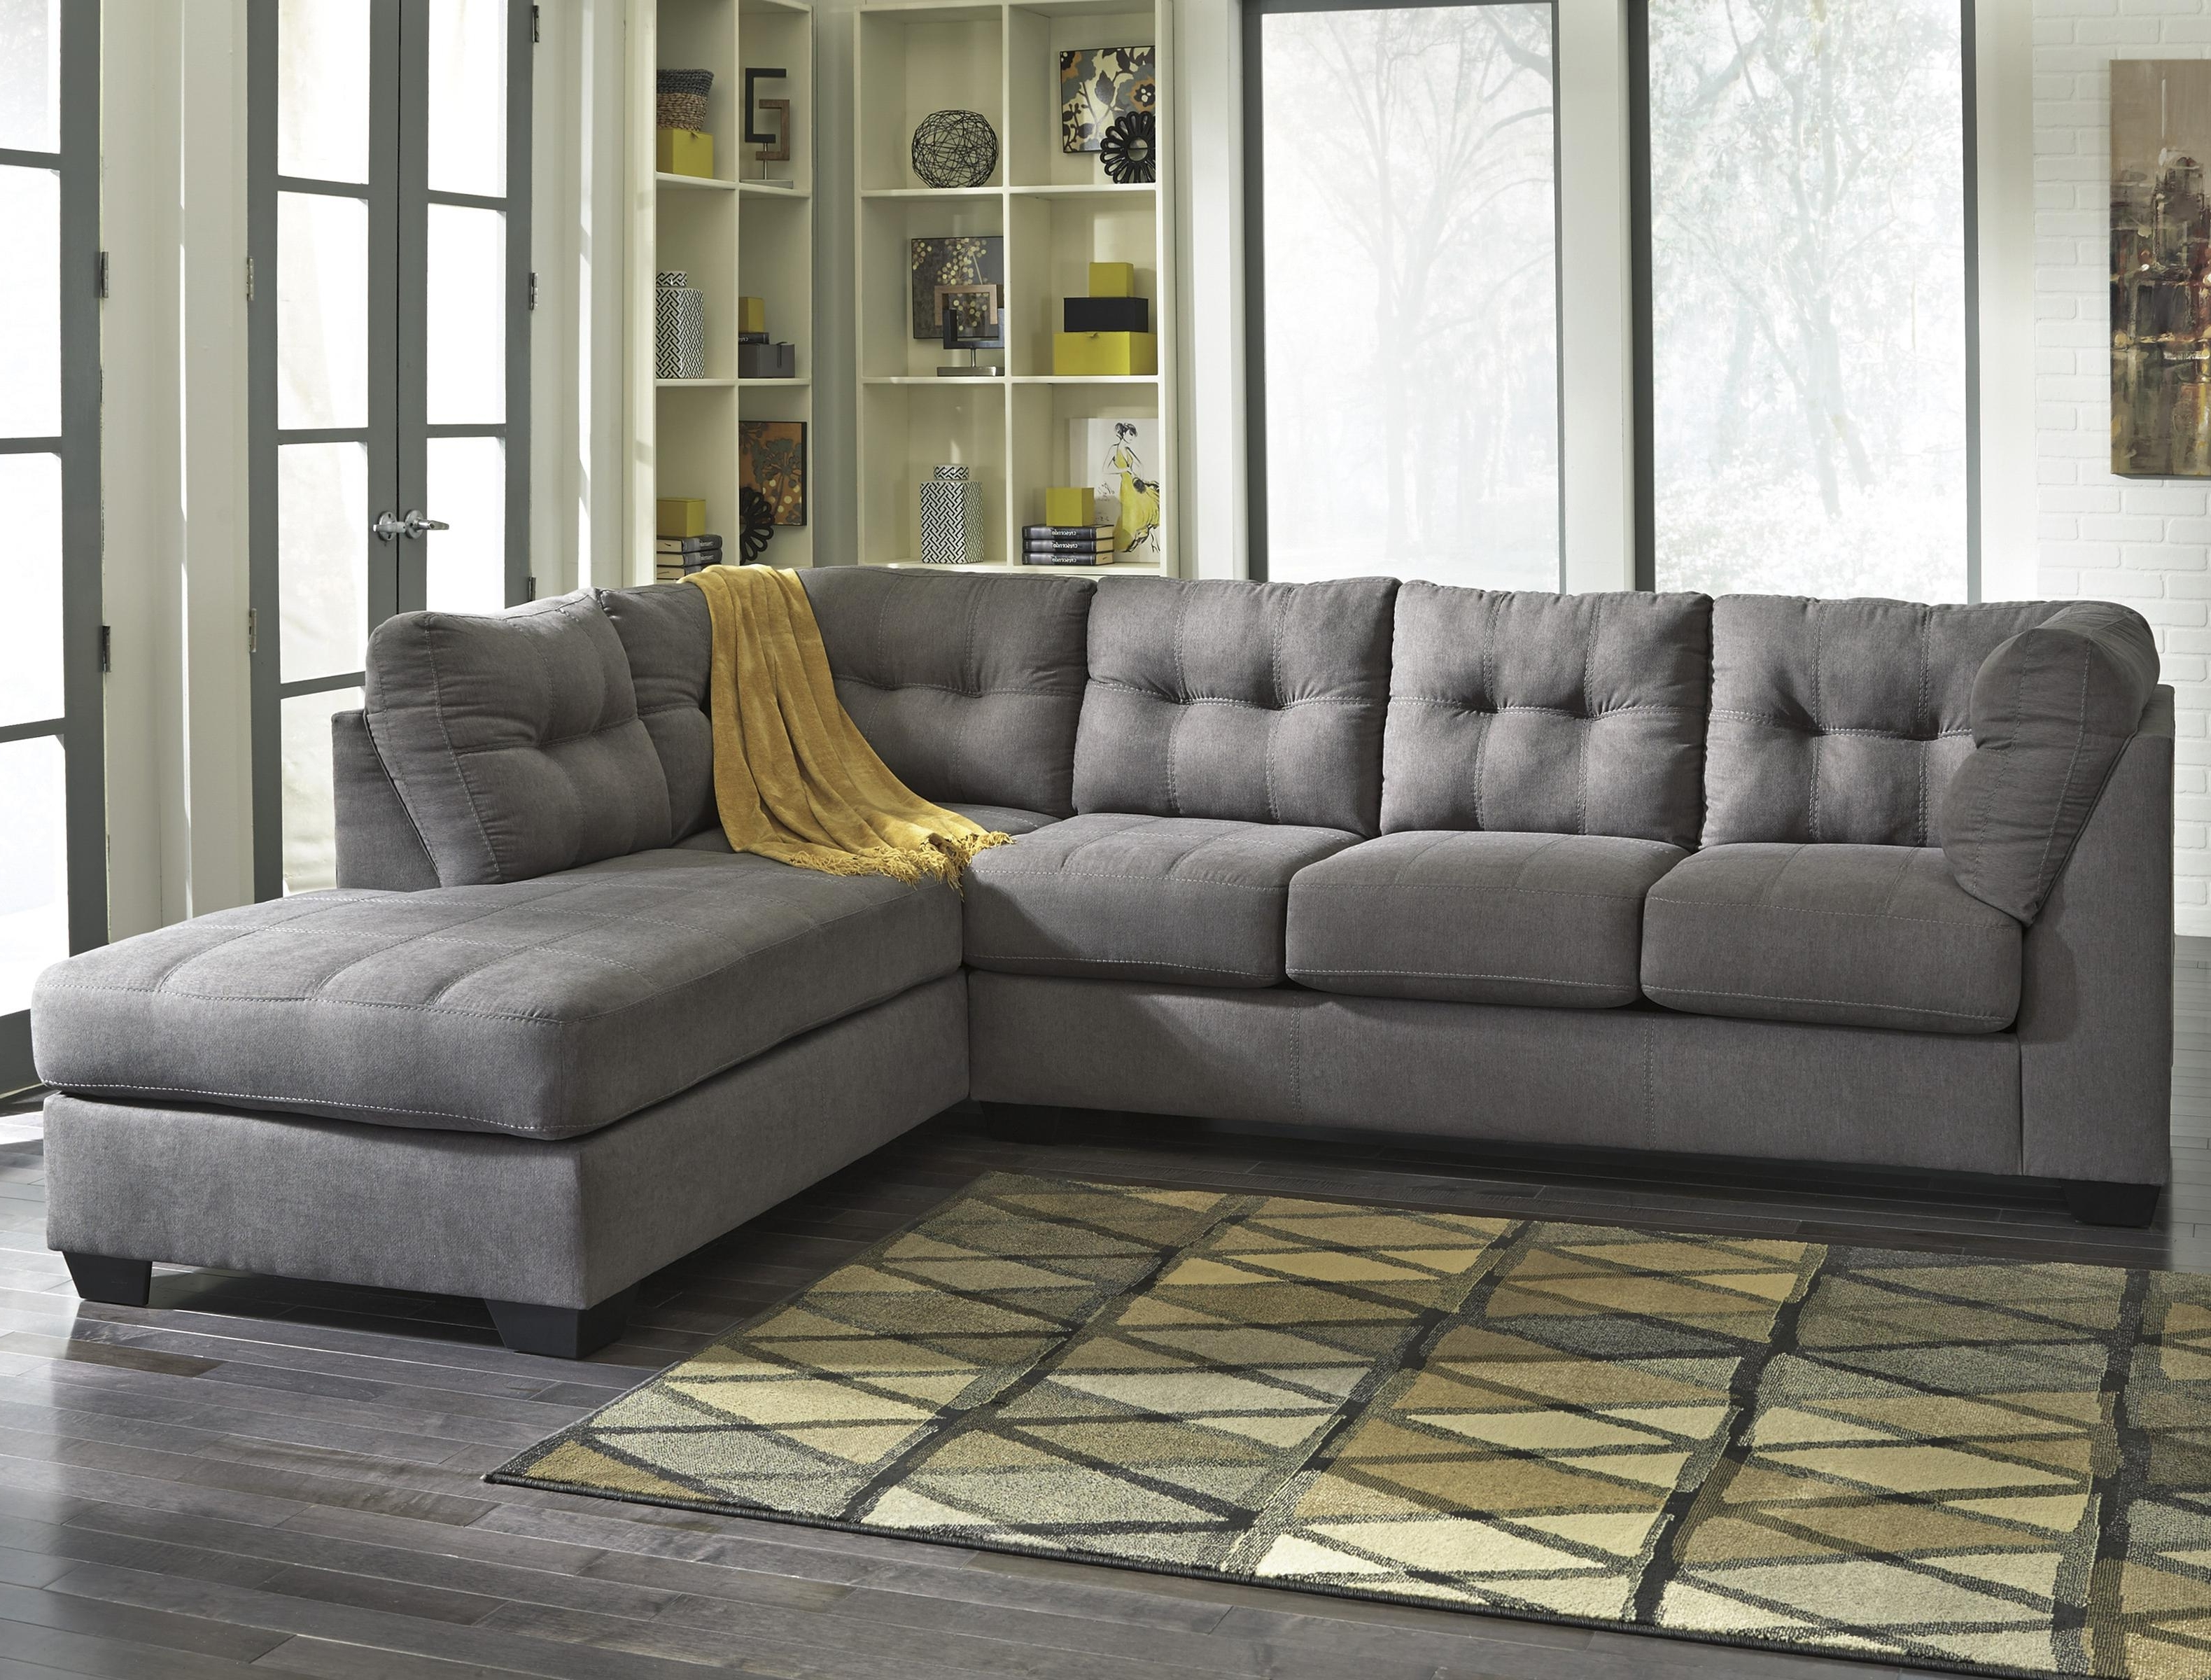 Benchcraft Maier – Charcoal 2 Piece Sectional With Right Chaise Pertaining To Newest Long Chaise Sofas (View 12 of 15)